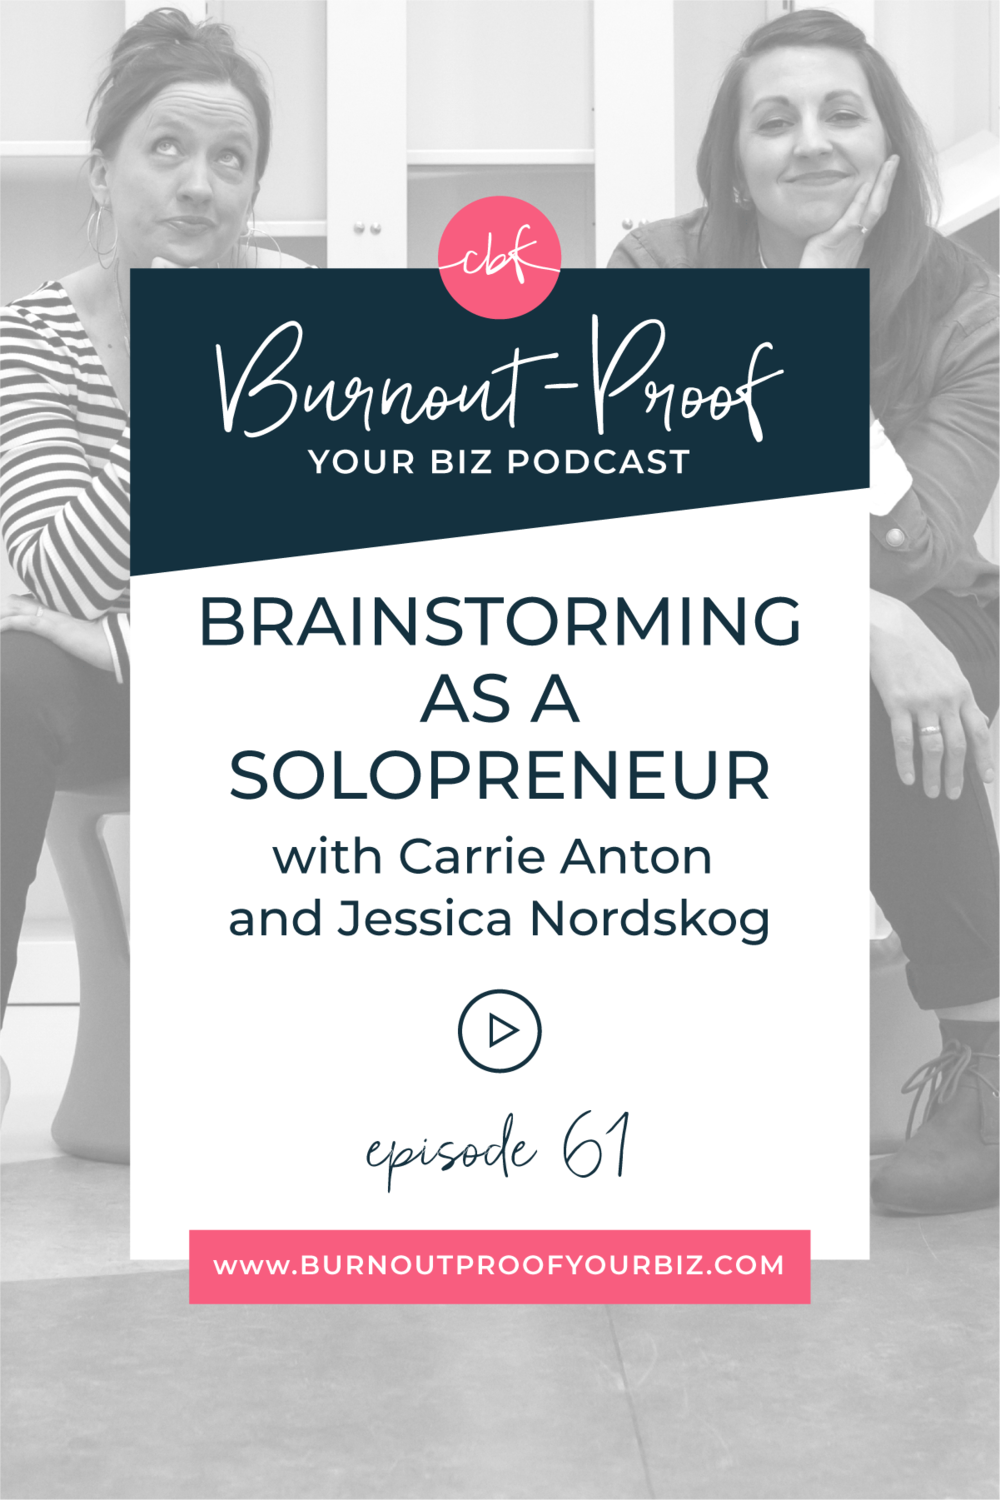 Burnout-Proof Your Biz Podcast with Chelsea B Foster | Episode 061 - Brainstorming as a Solopreneur with Carrie Anton and Jessica Nordskog | Learn how to run your biz and live your dream life on your own terms without the fear of burnout.  |||  BURN OUT PROOF YOUR BUSINESS PODCAST | BRAINSTORMING GUIDE | BRAINSTORMING FOR SOLOPRENEURS | MULTI-PASSIONATE CREATIVES | PREVENTING OVERWHELM IS YOUR BUSINESS | BRAINSTORMING ACTIVITIES